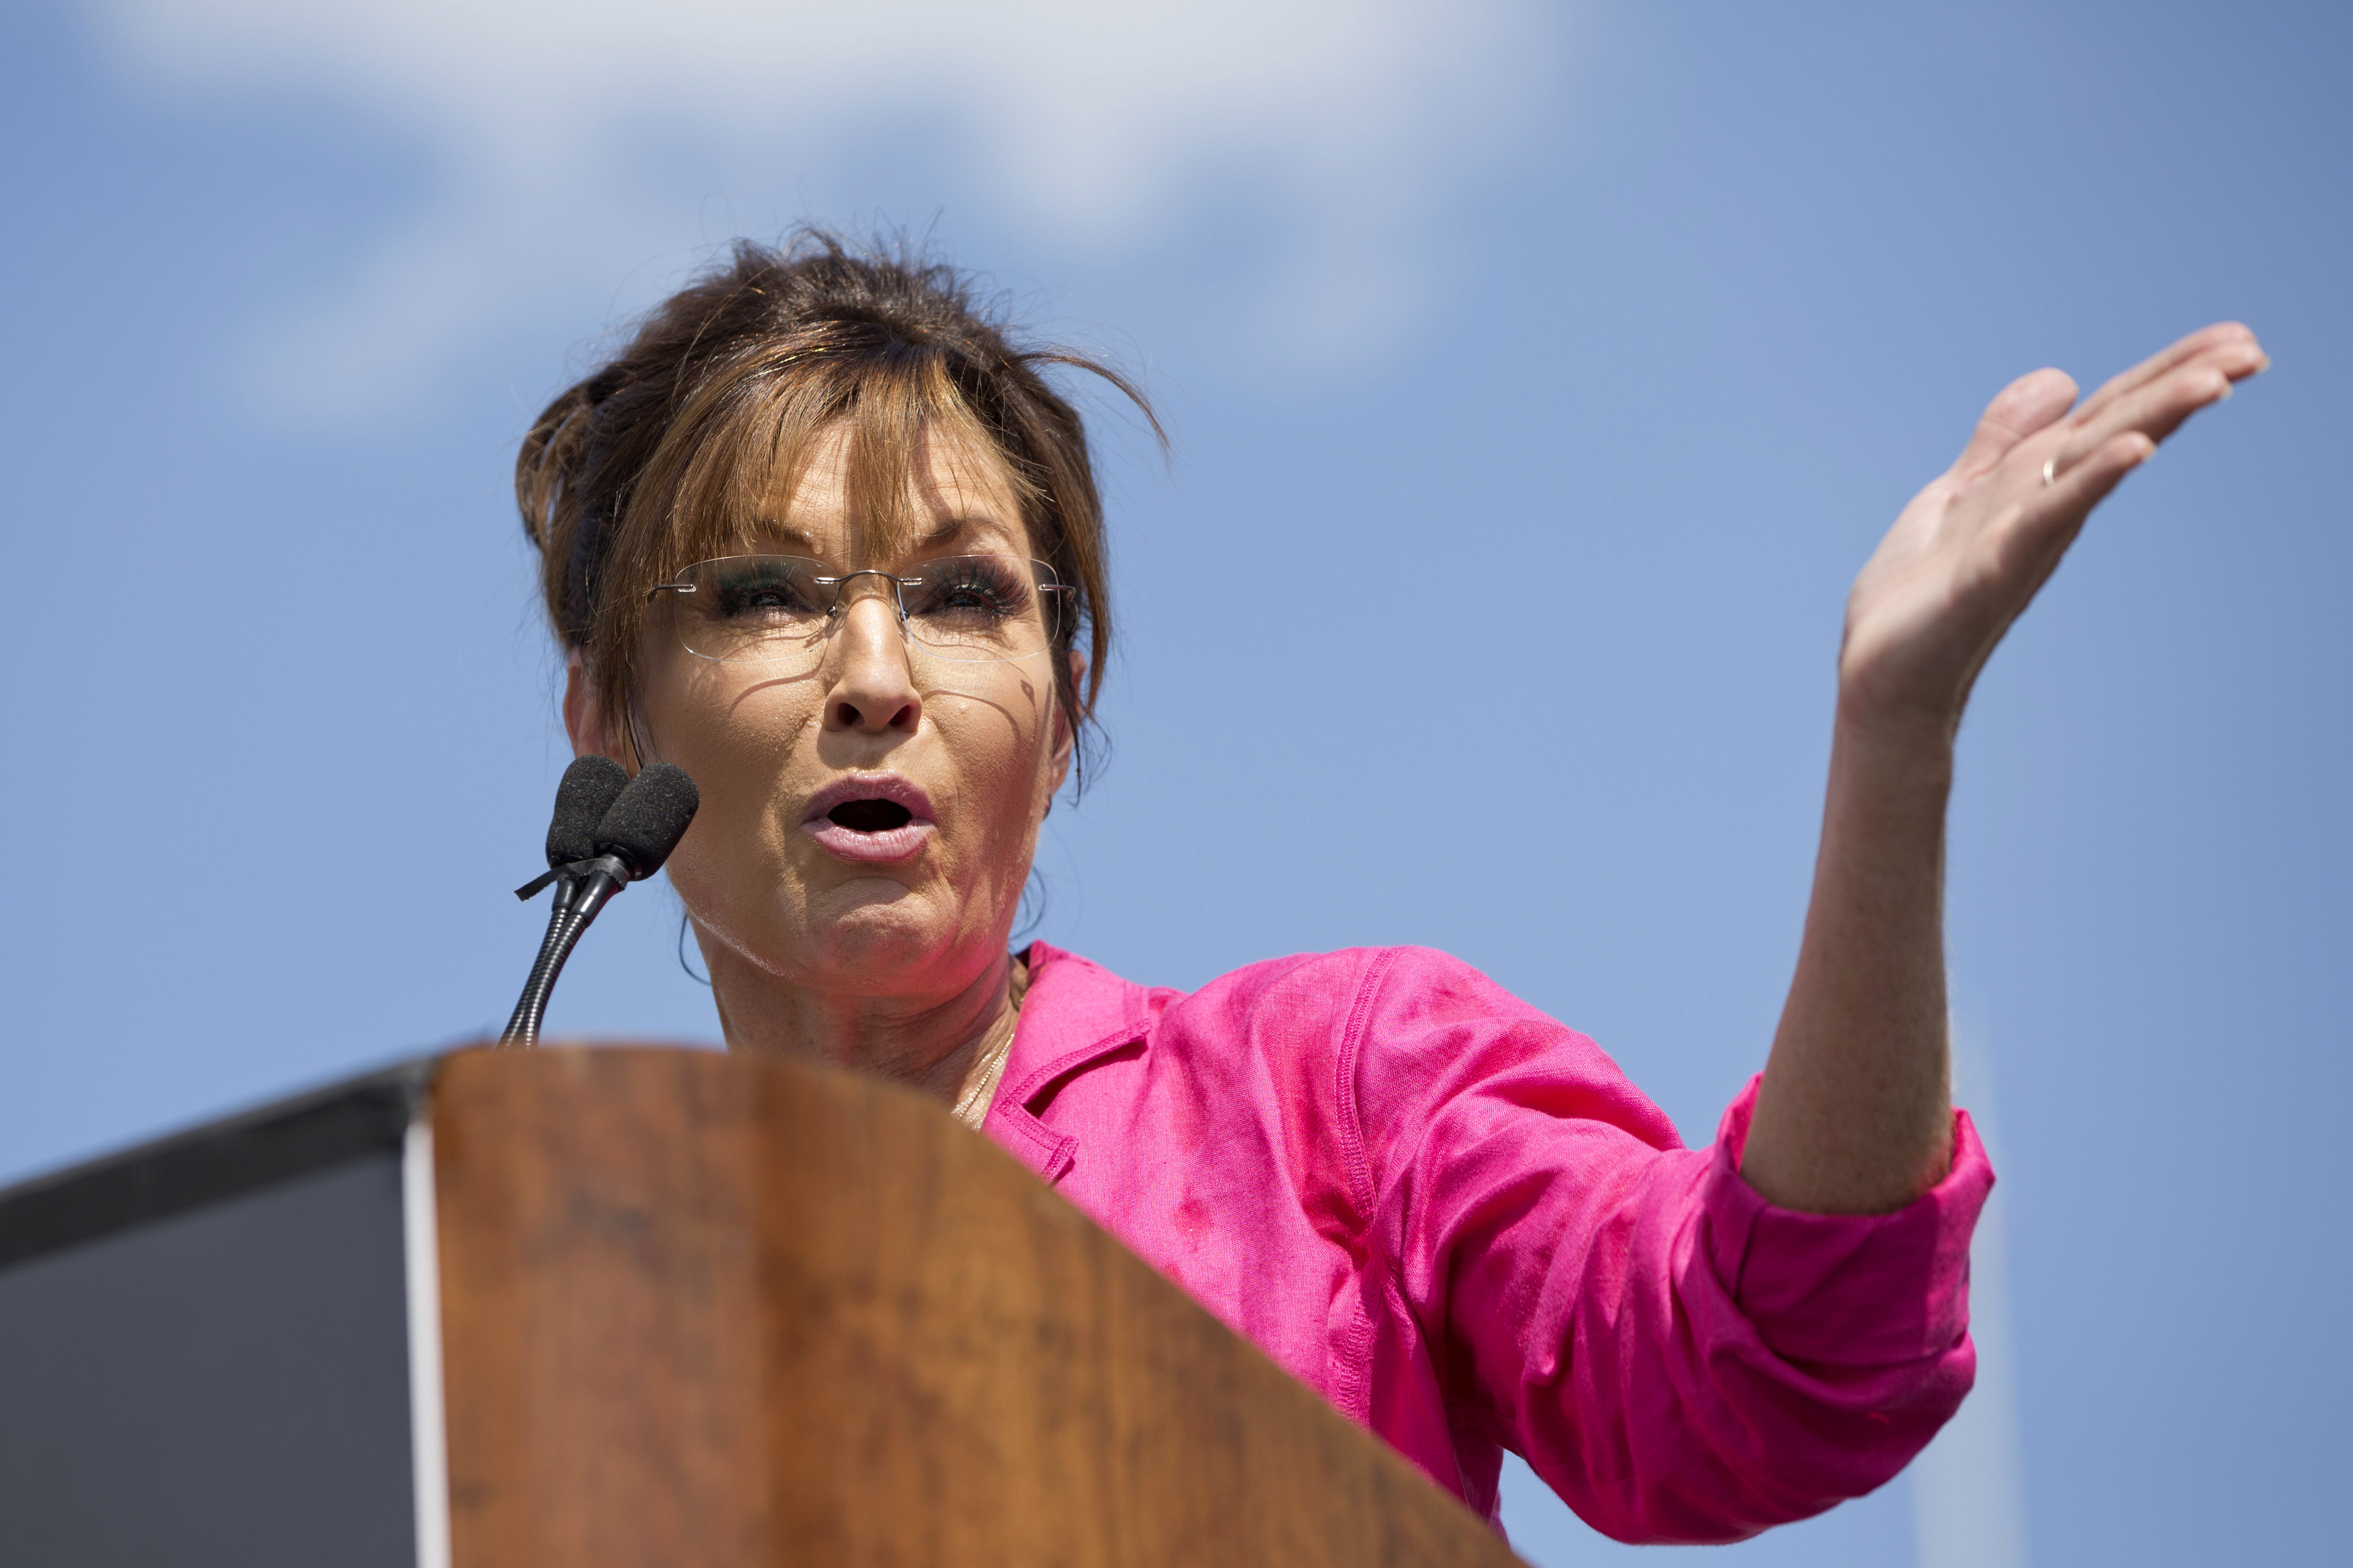 sarah palin wants arabic numerals banned from america's schools